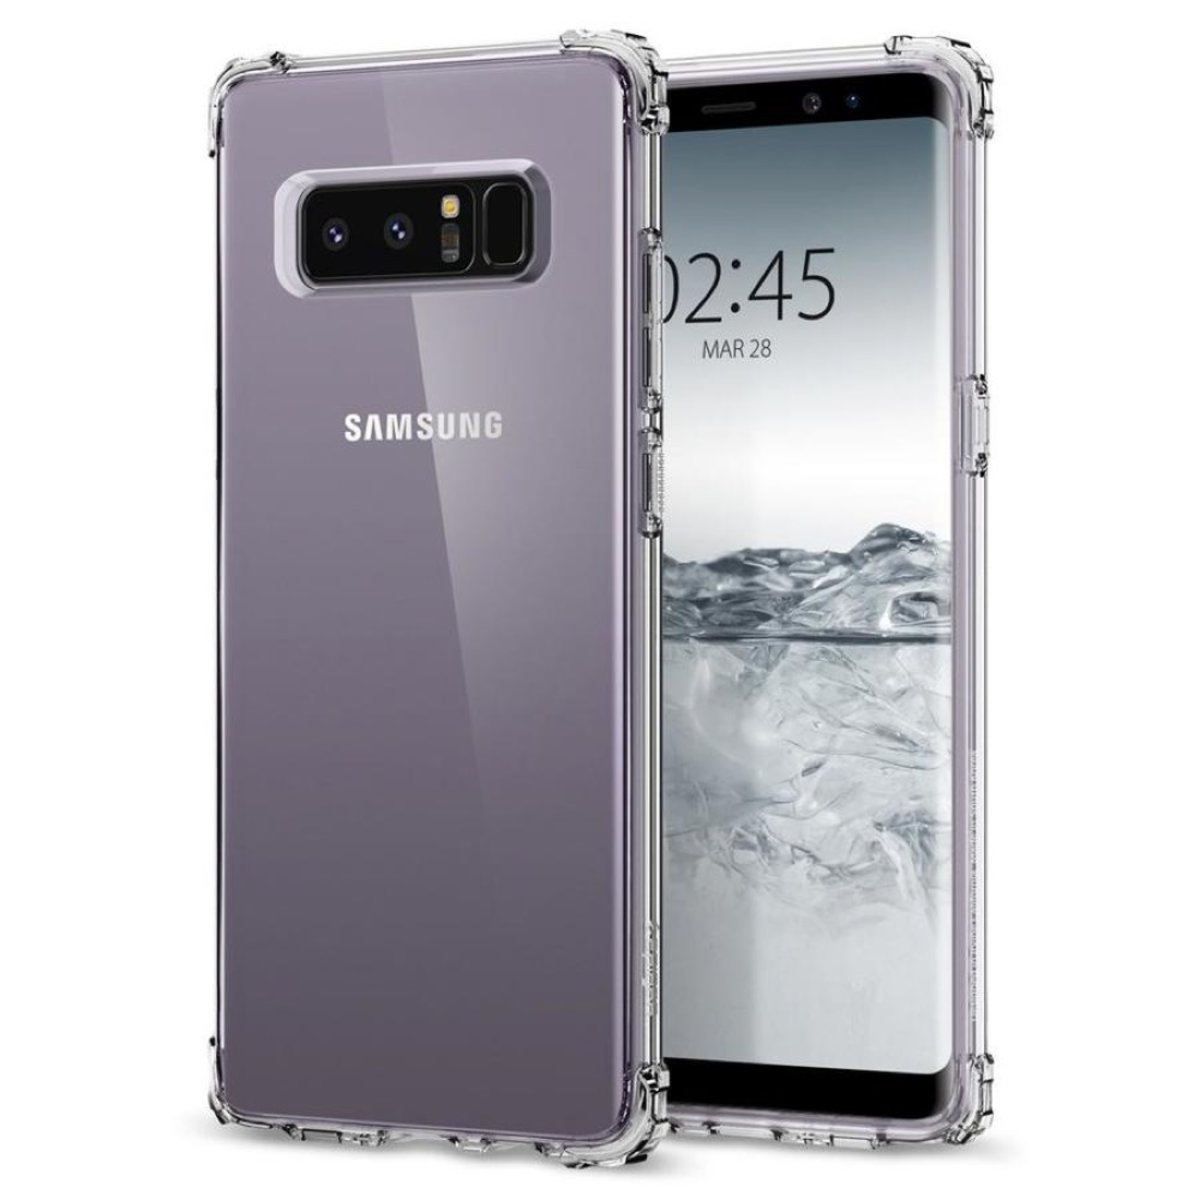 Galaxy Note 8 Case Crystal Shell - Crystal Clear